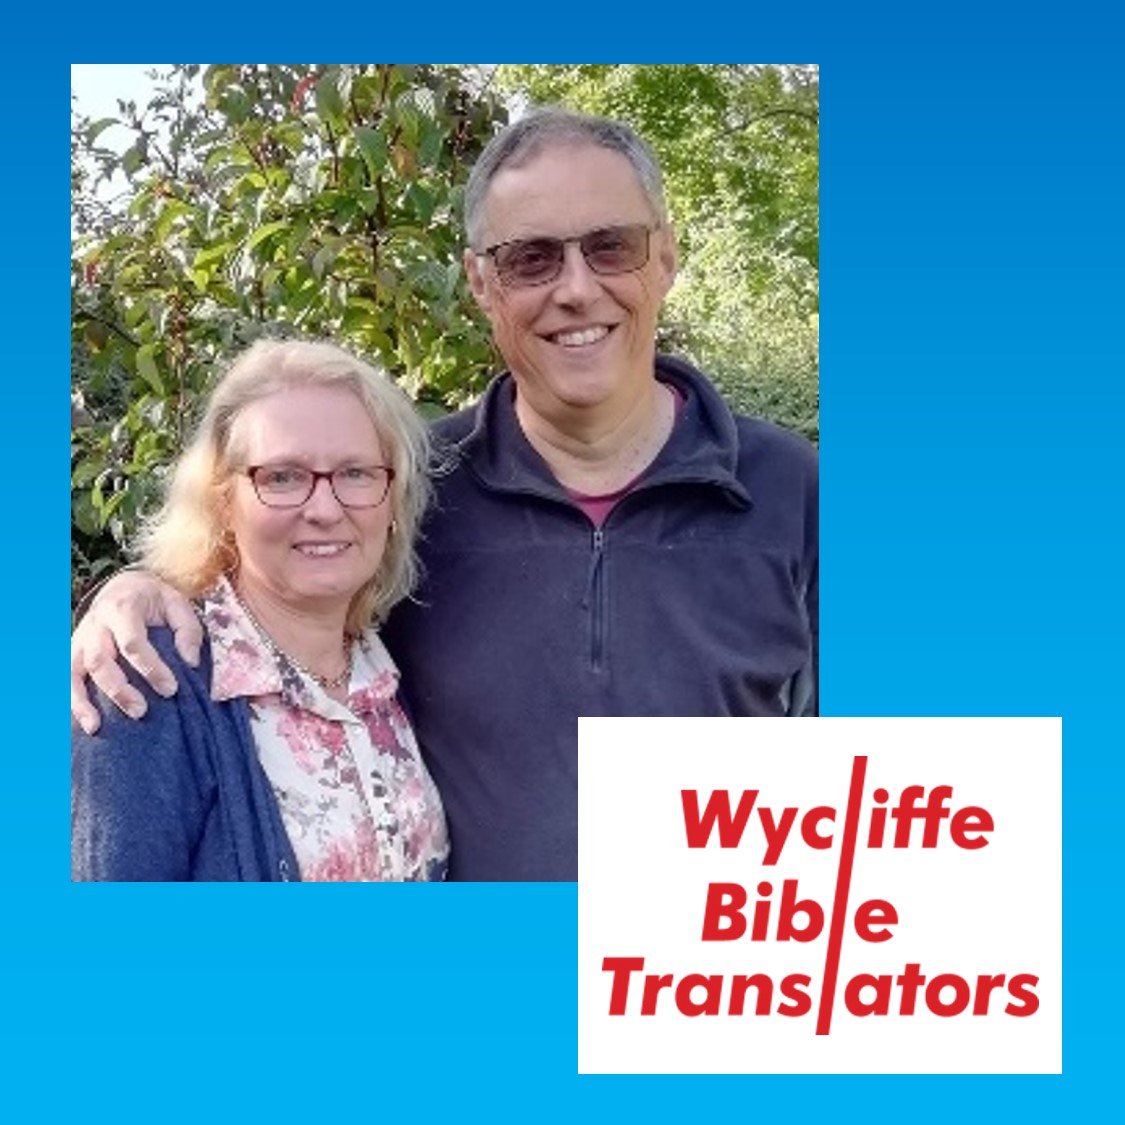 *Wycliffe Bible Translators*Wycliffe Bible Translators exists to enable all peoples to engage with the Bible in a language that speaks to their heart. It believes that the Bible is the inspired word of God and it is for all people everywhere speaking all languages. Having completed a 20 year project translating the Bible into a language spoken by more than 6 million people in Central Asia, David & Georgina are now involved in training, mentoring and advising Bible translators around the world. Find out more at wycliffe.org.uk